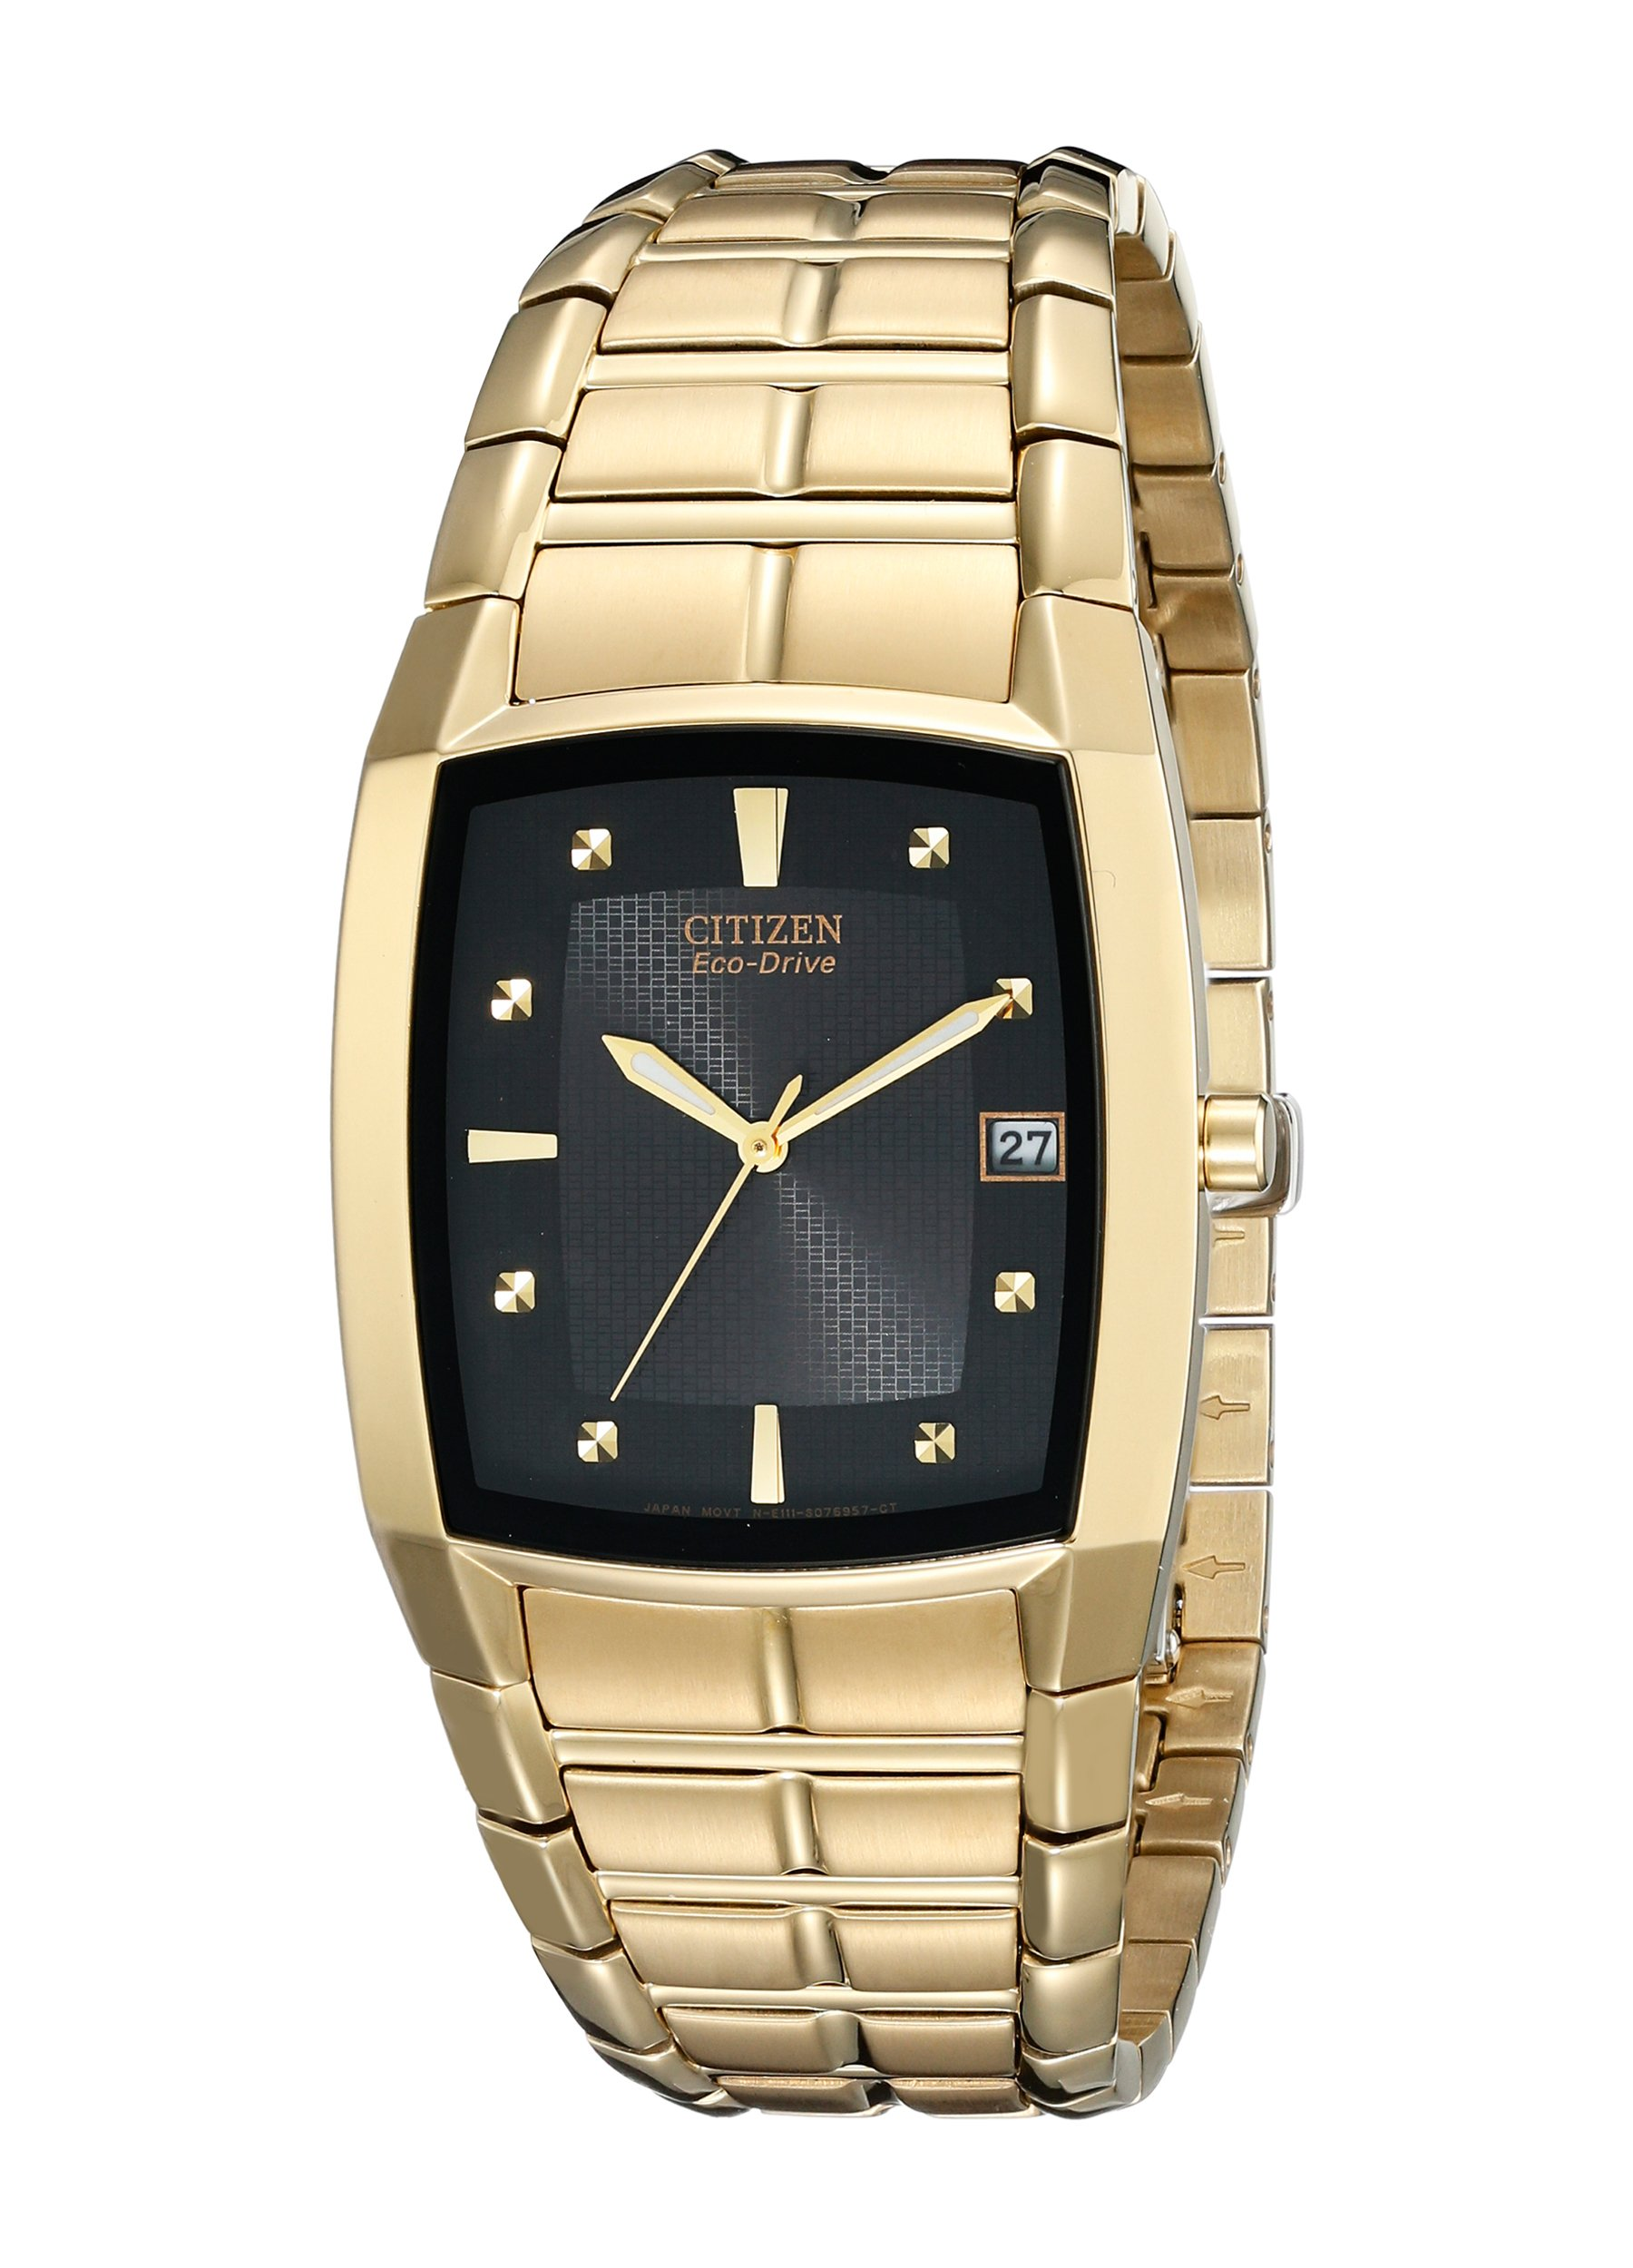 Citizen Men's Eco-Drive Stainless Steel Watch with Date, BM6552-52E